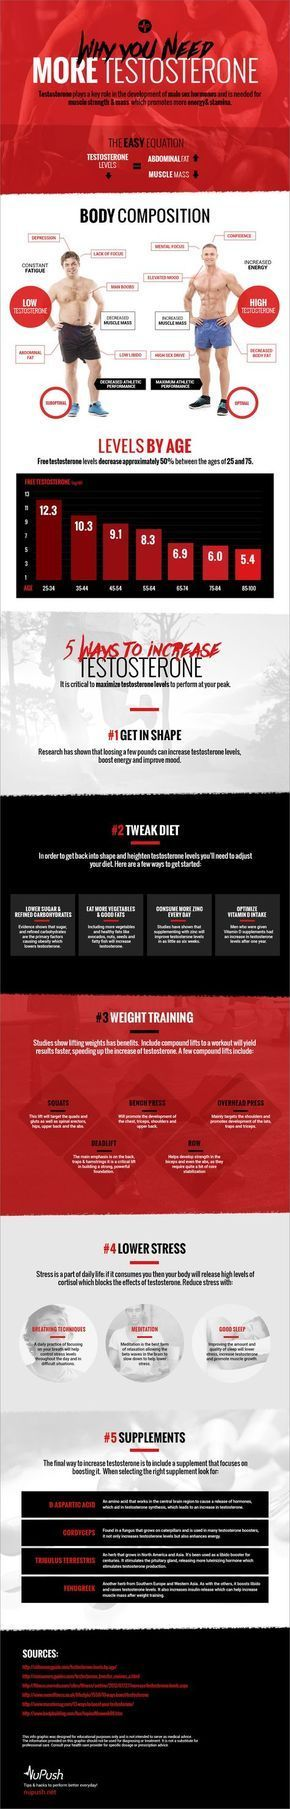 5 Ways to Increase Testosterone Levels